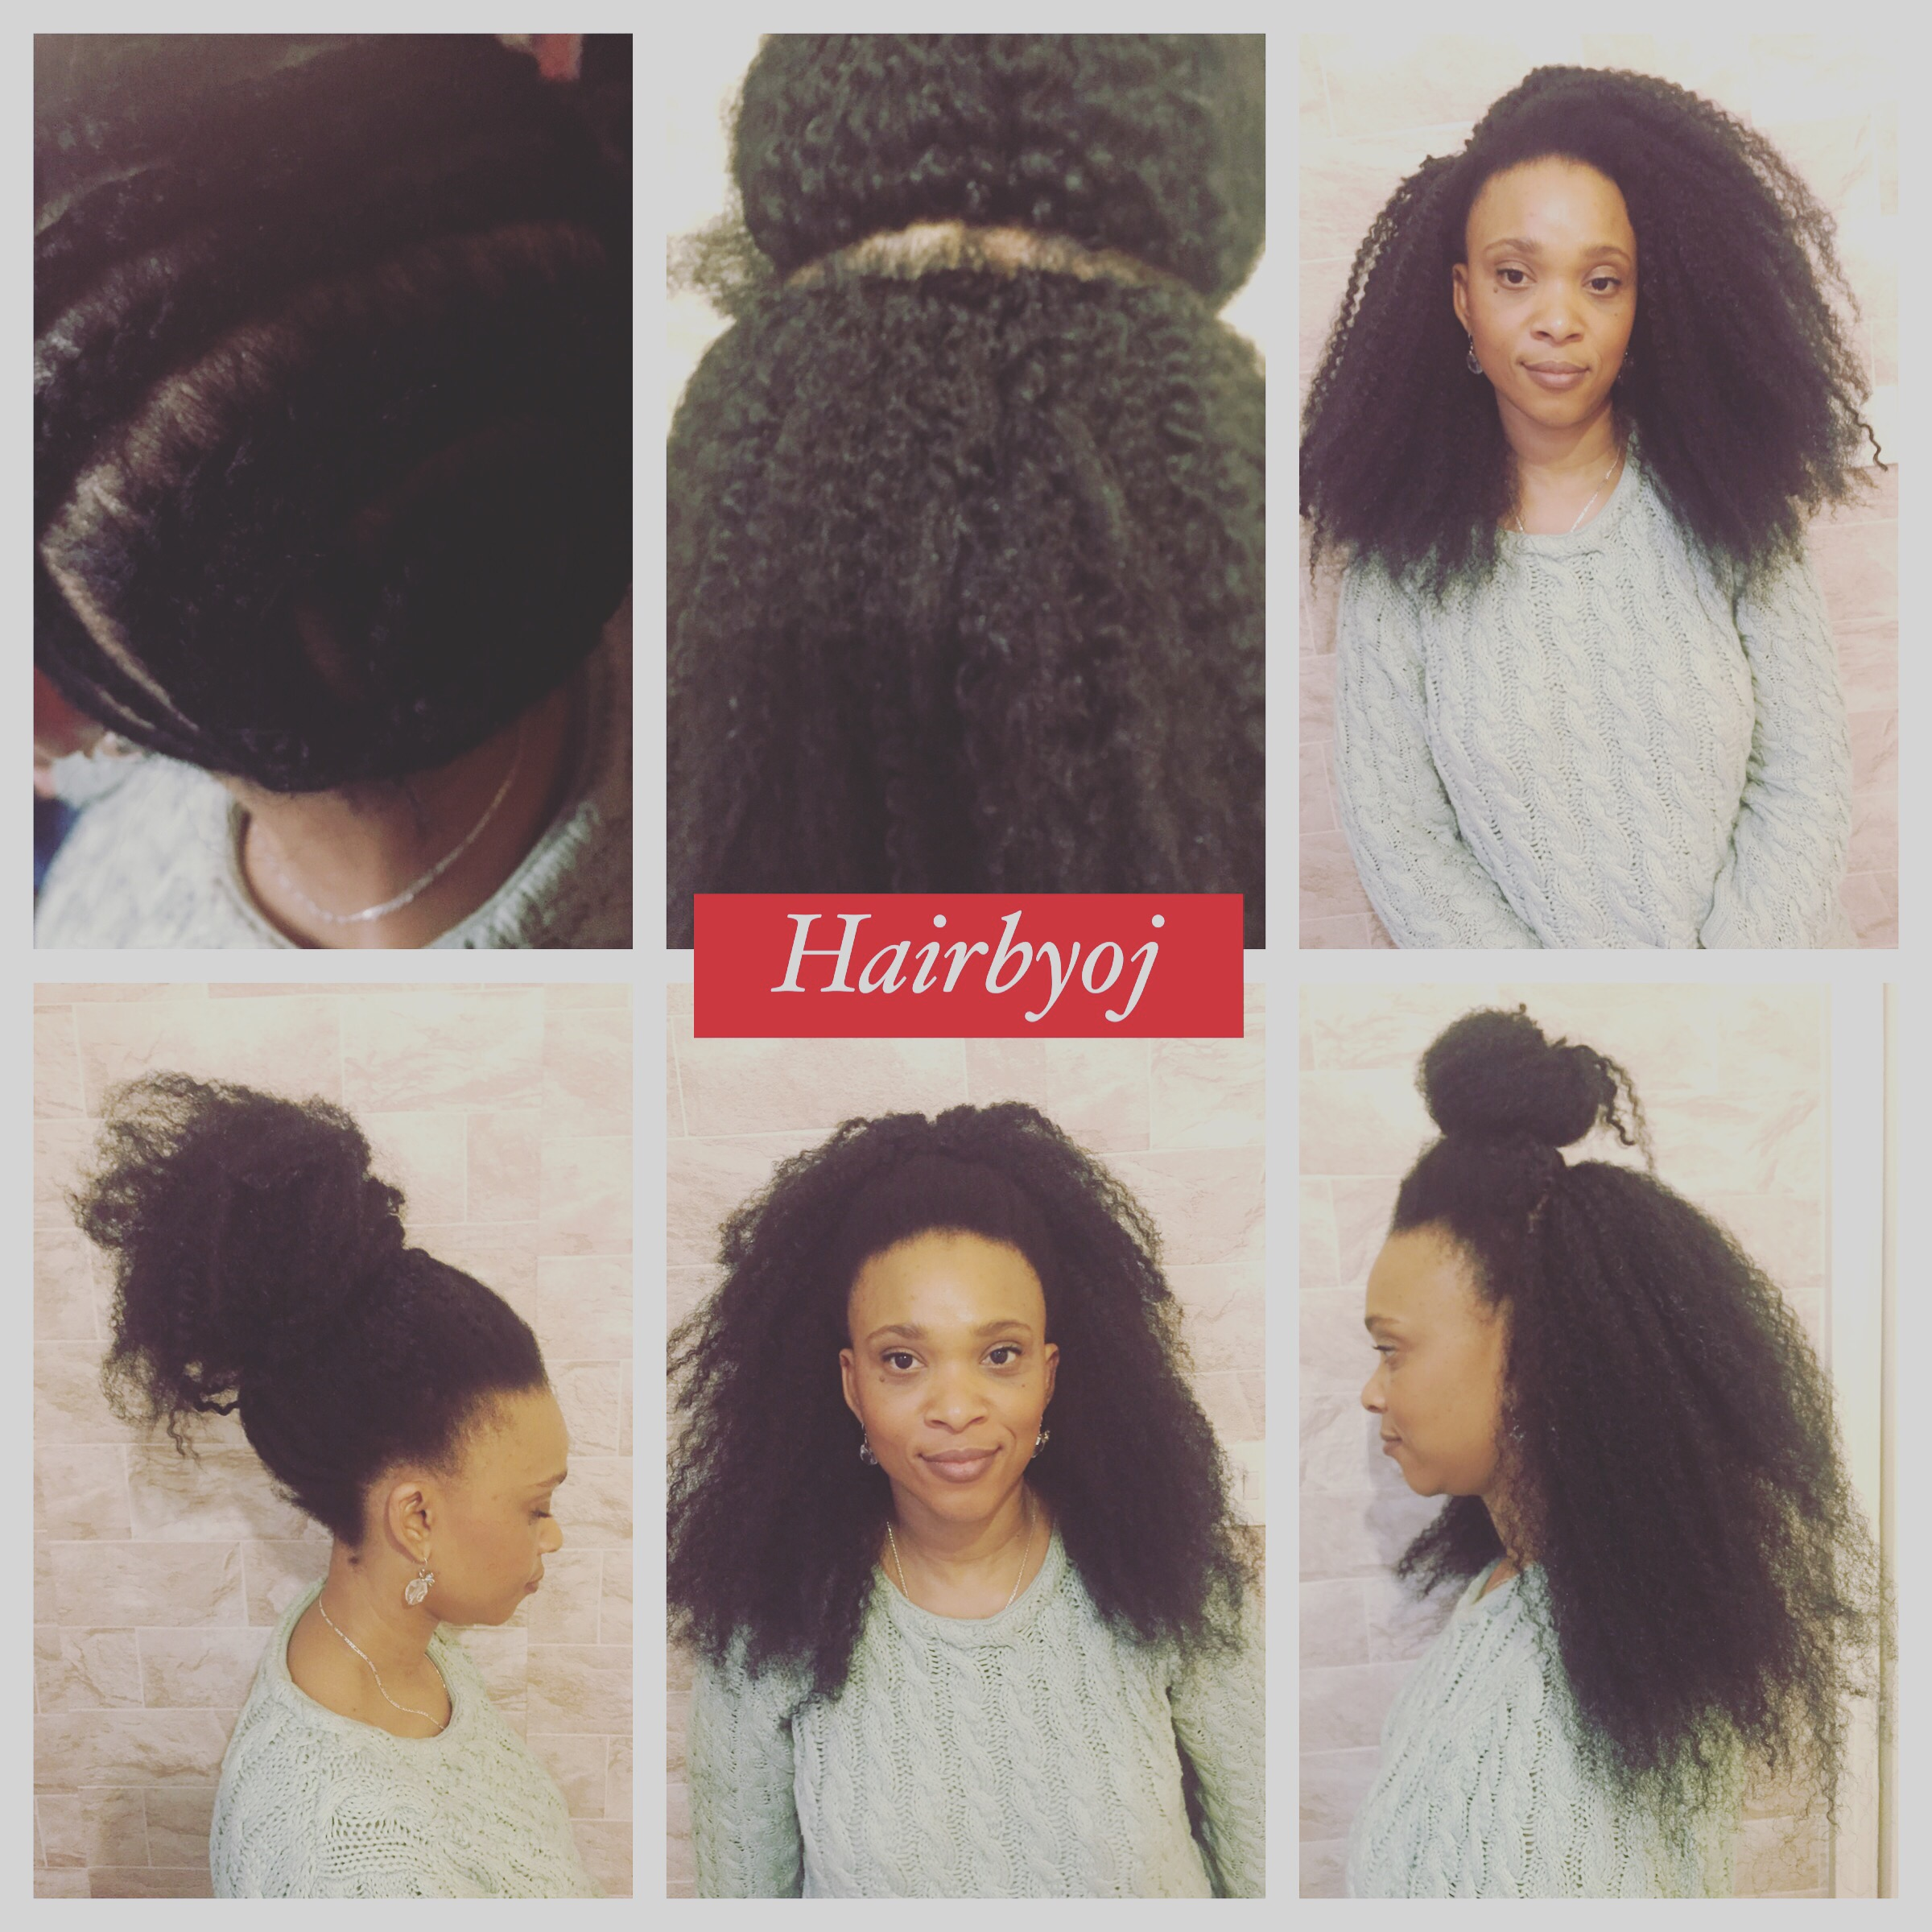 Crochet Marley Hair Vixen : Shoulder length 2 way vixen crochet braids with Marley hair and ...